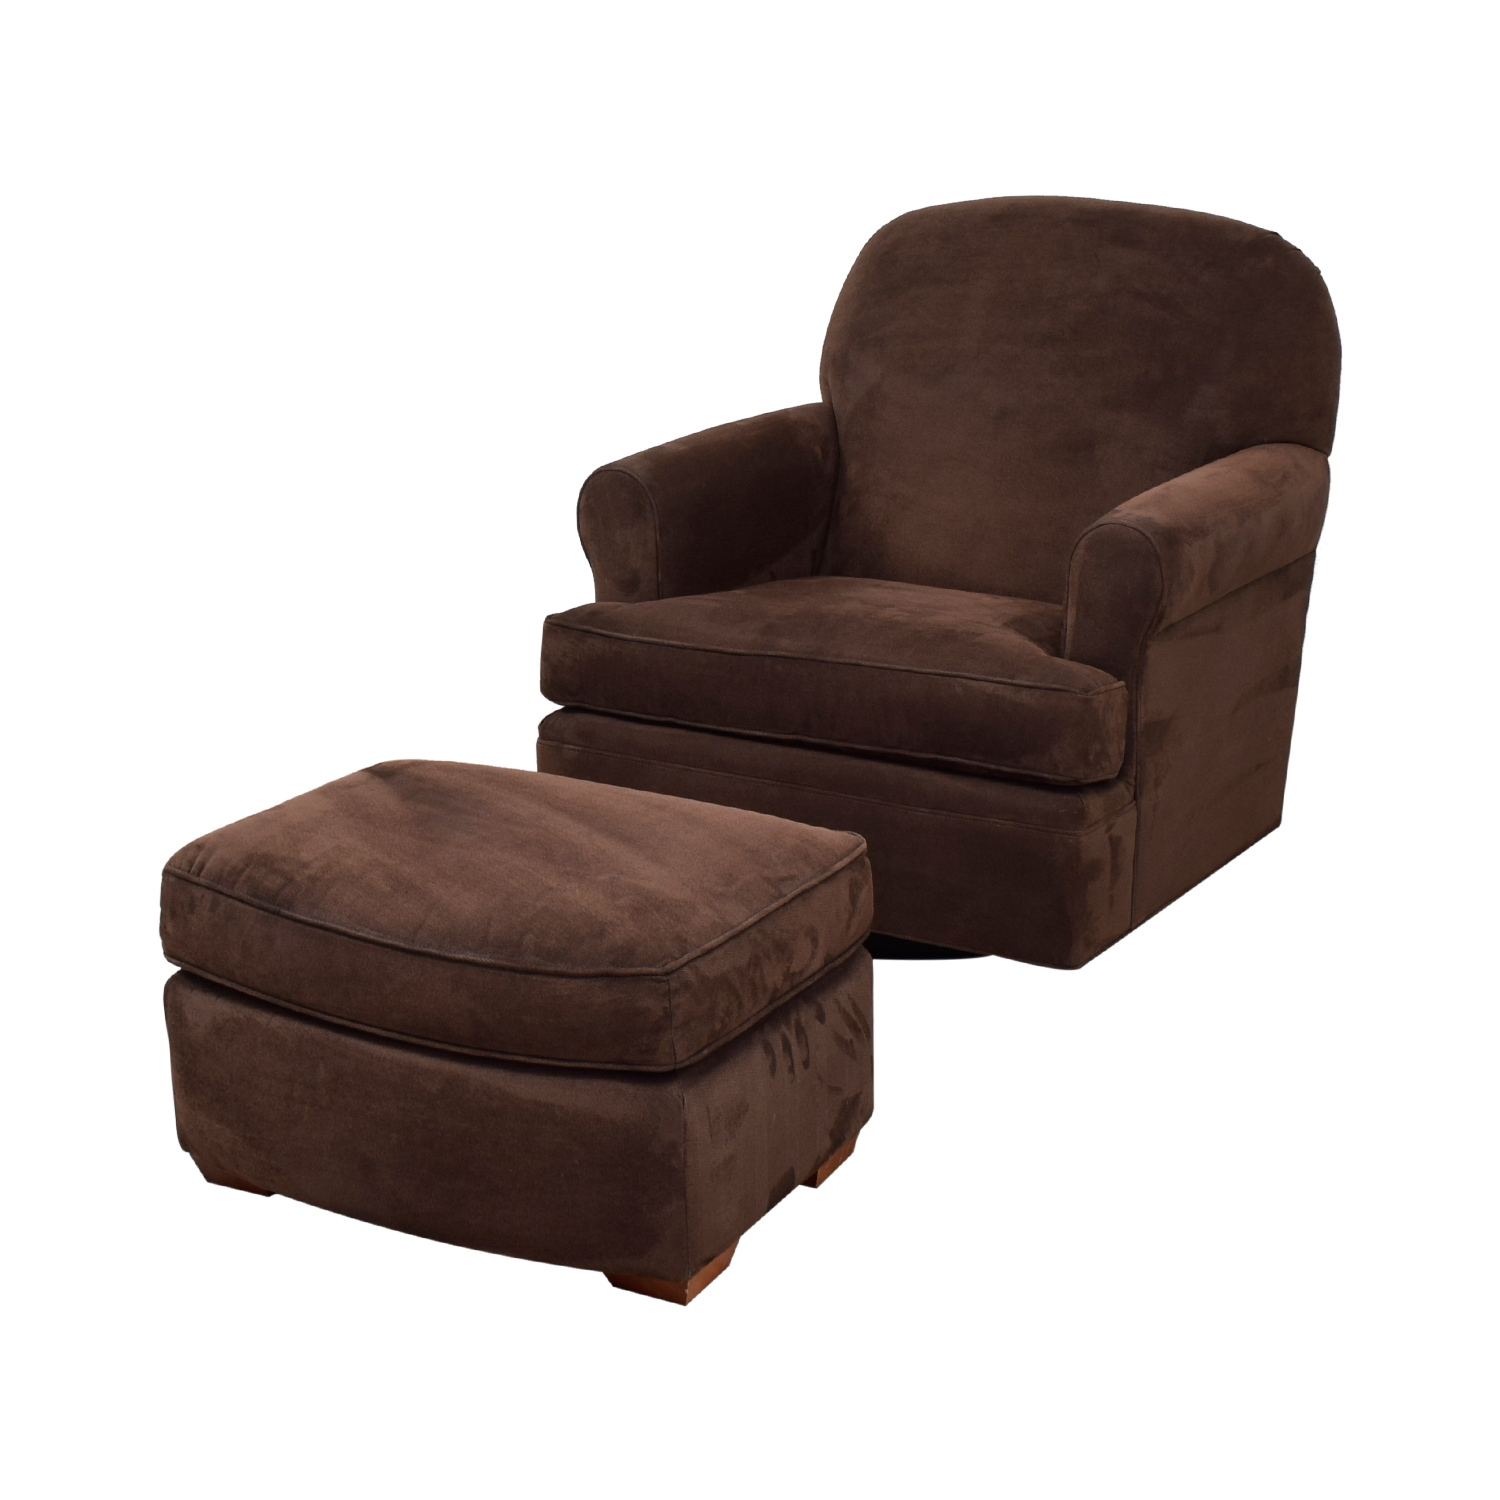 Peachy 90 Off Land Of Nod Land Of Nod Dylan Swivel Glider Chair And Ottoman Chairs Beatyapartments Chair Design Images Beatyapartmentscom